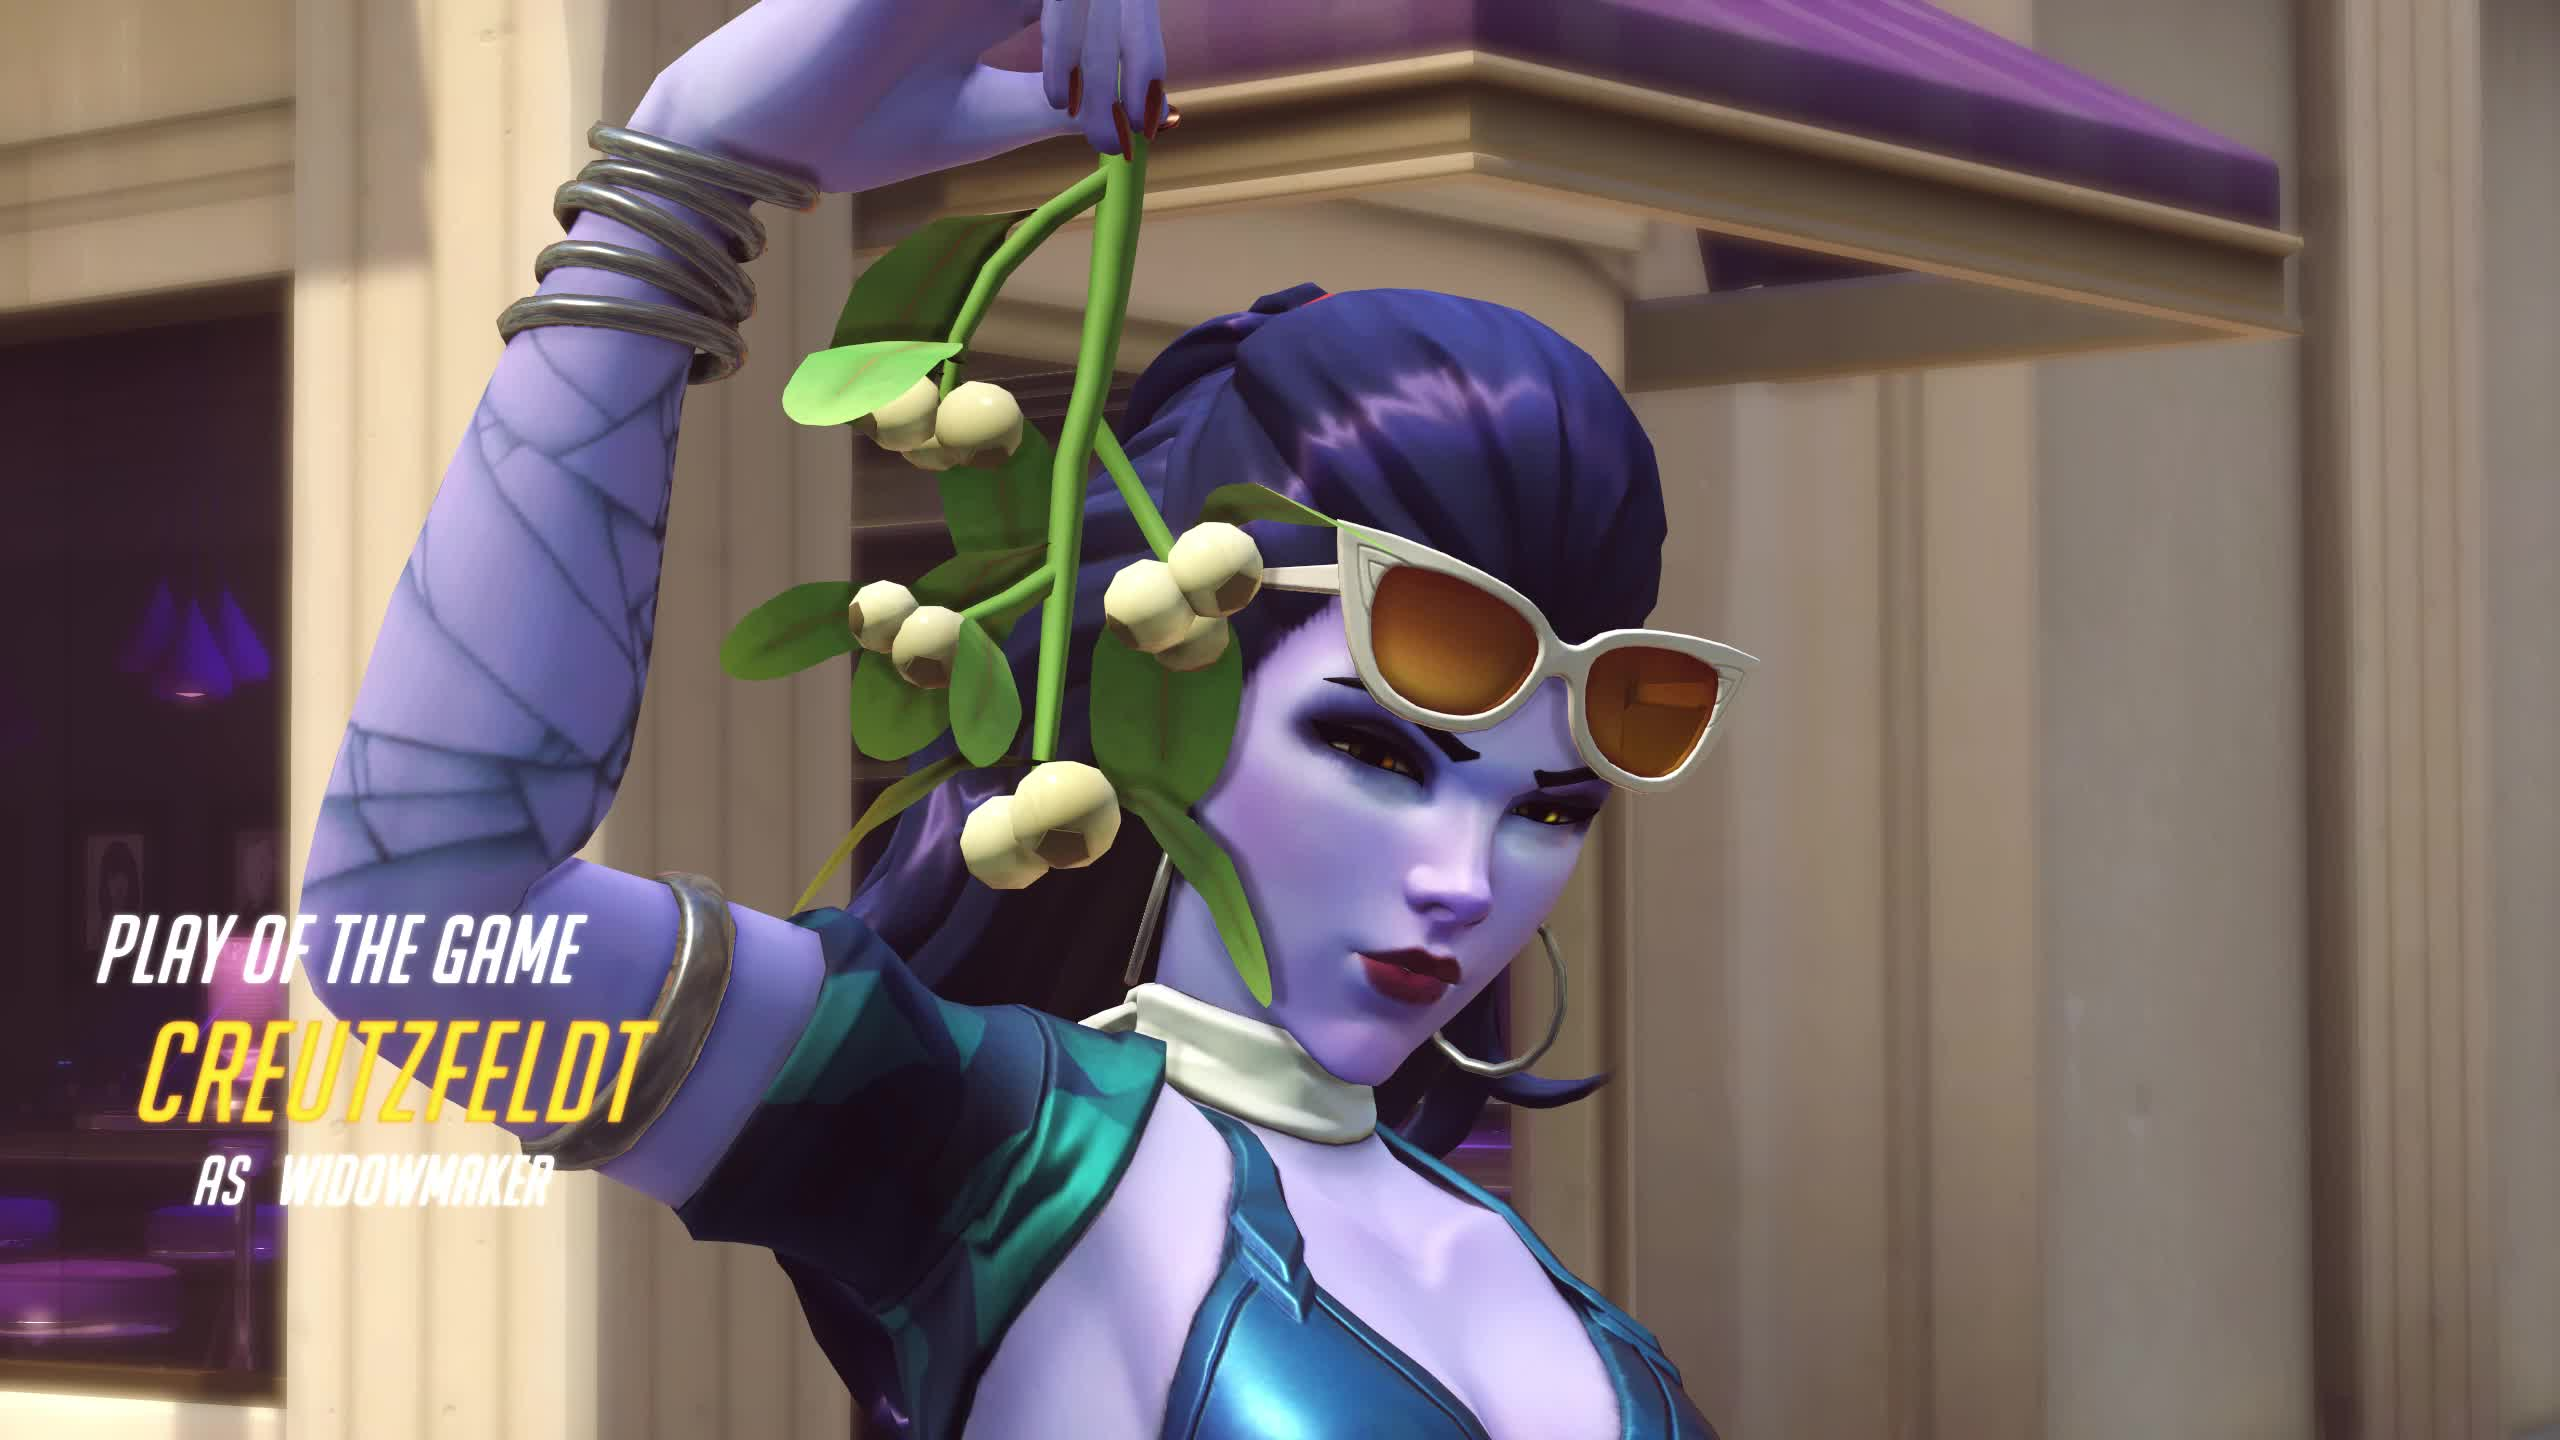 overwatch, widowmaker, Confused by terrain GIFs